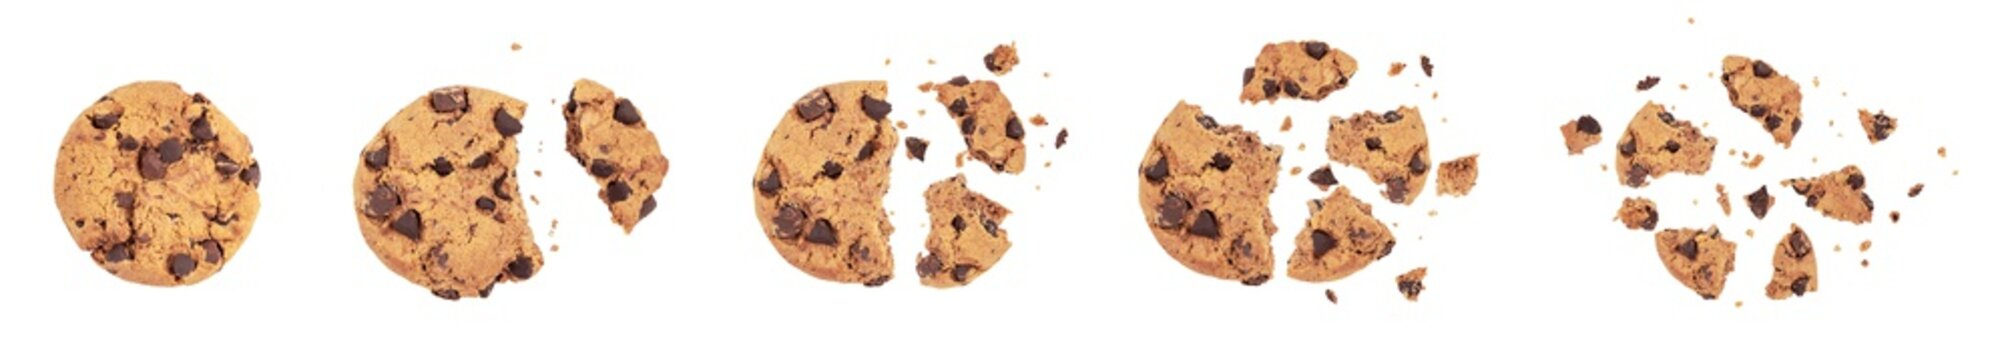 Isolated clipping path of die cut dark chocolate chip cookies piece stack and crumbs on white background of closeup tasty bakery organic homemade American biscuit sweet dessert